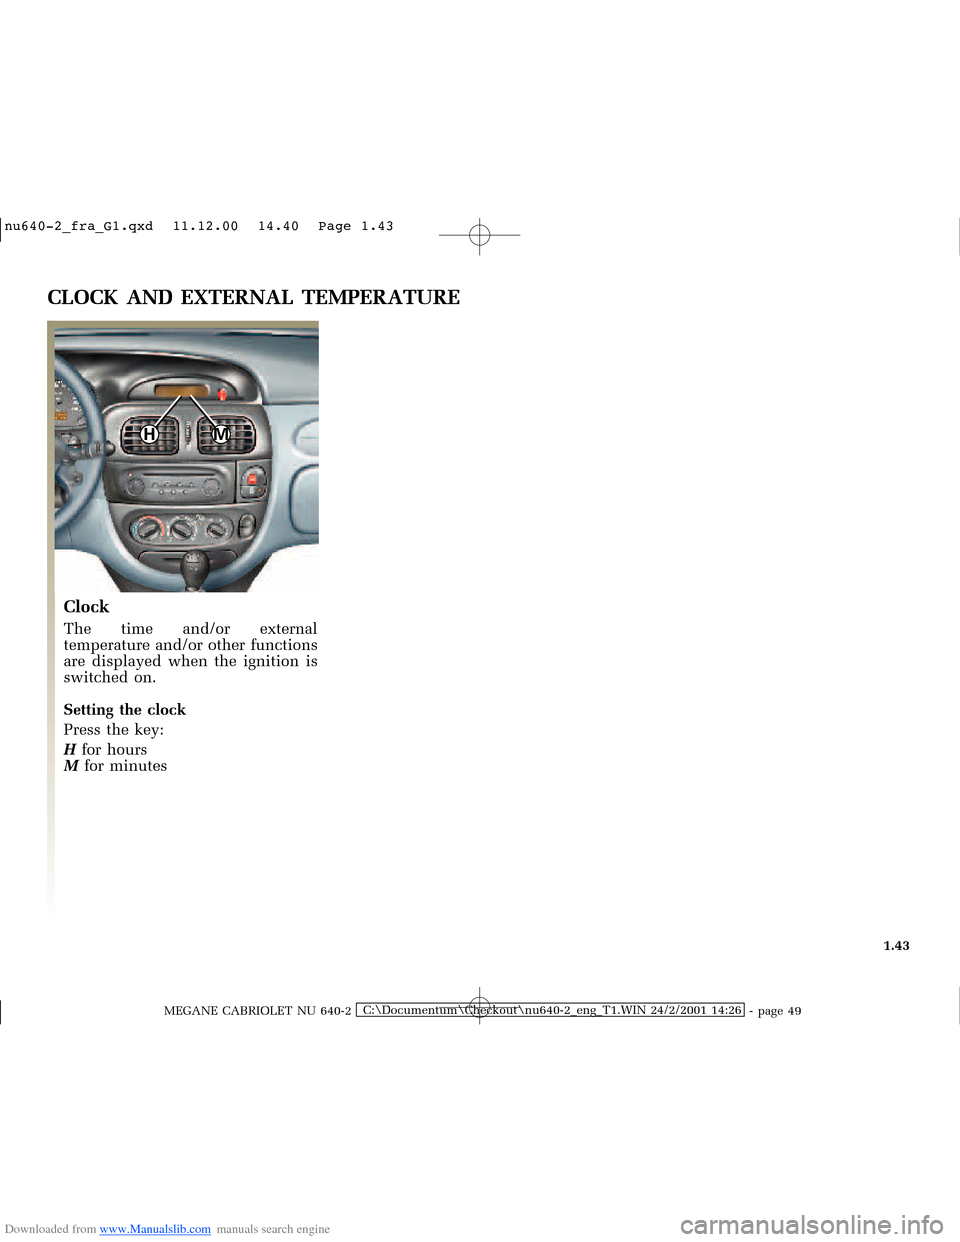 RENAULT MEGANE 2000 X64 / 1.G Owners Manual, Page 48